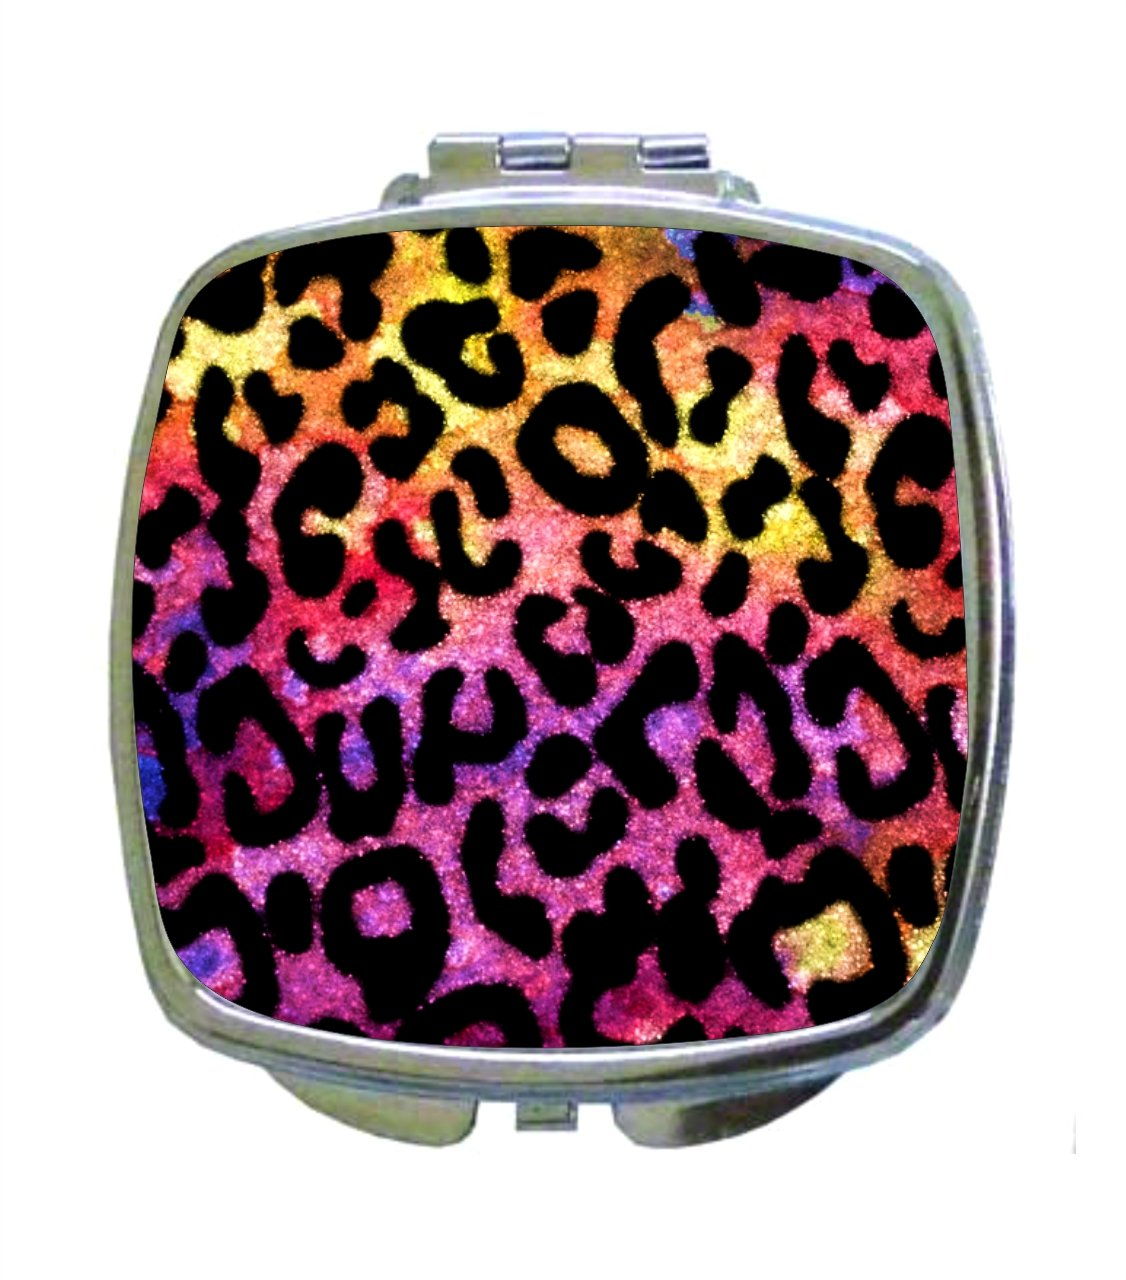 Colorful Watercolor Grungy Leopard Animal Print - Compact Square Makeup/Face Mirror by Rosie Parker Inc. (Image #1)